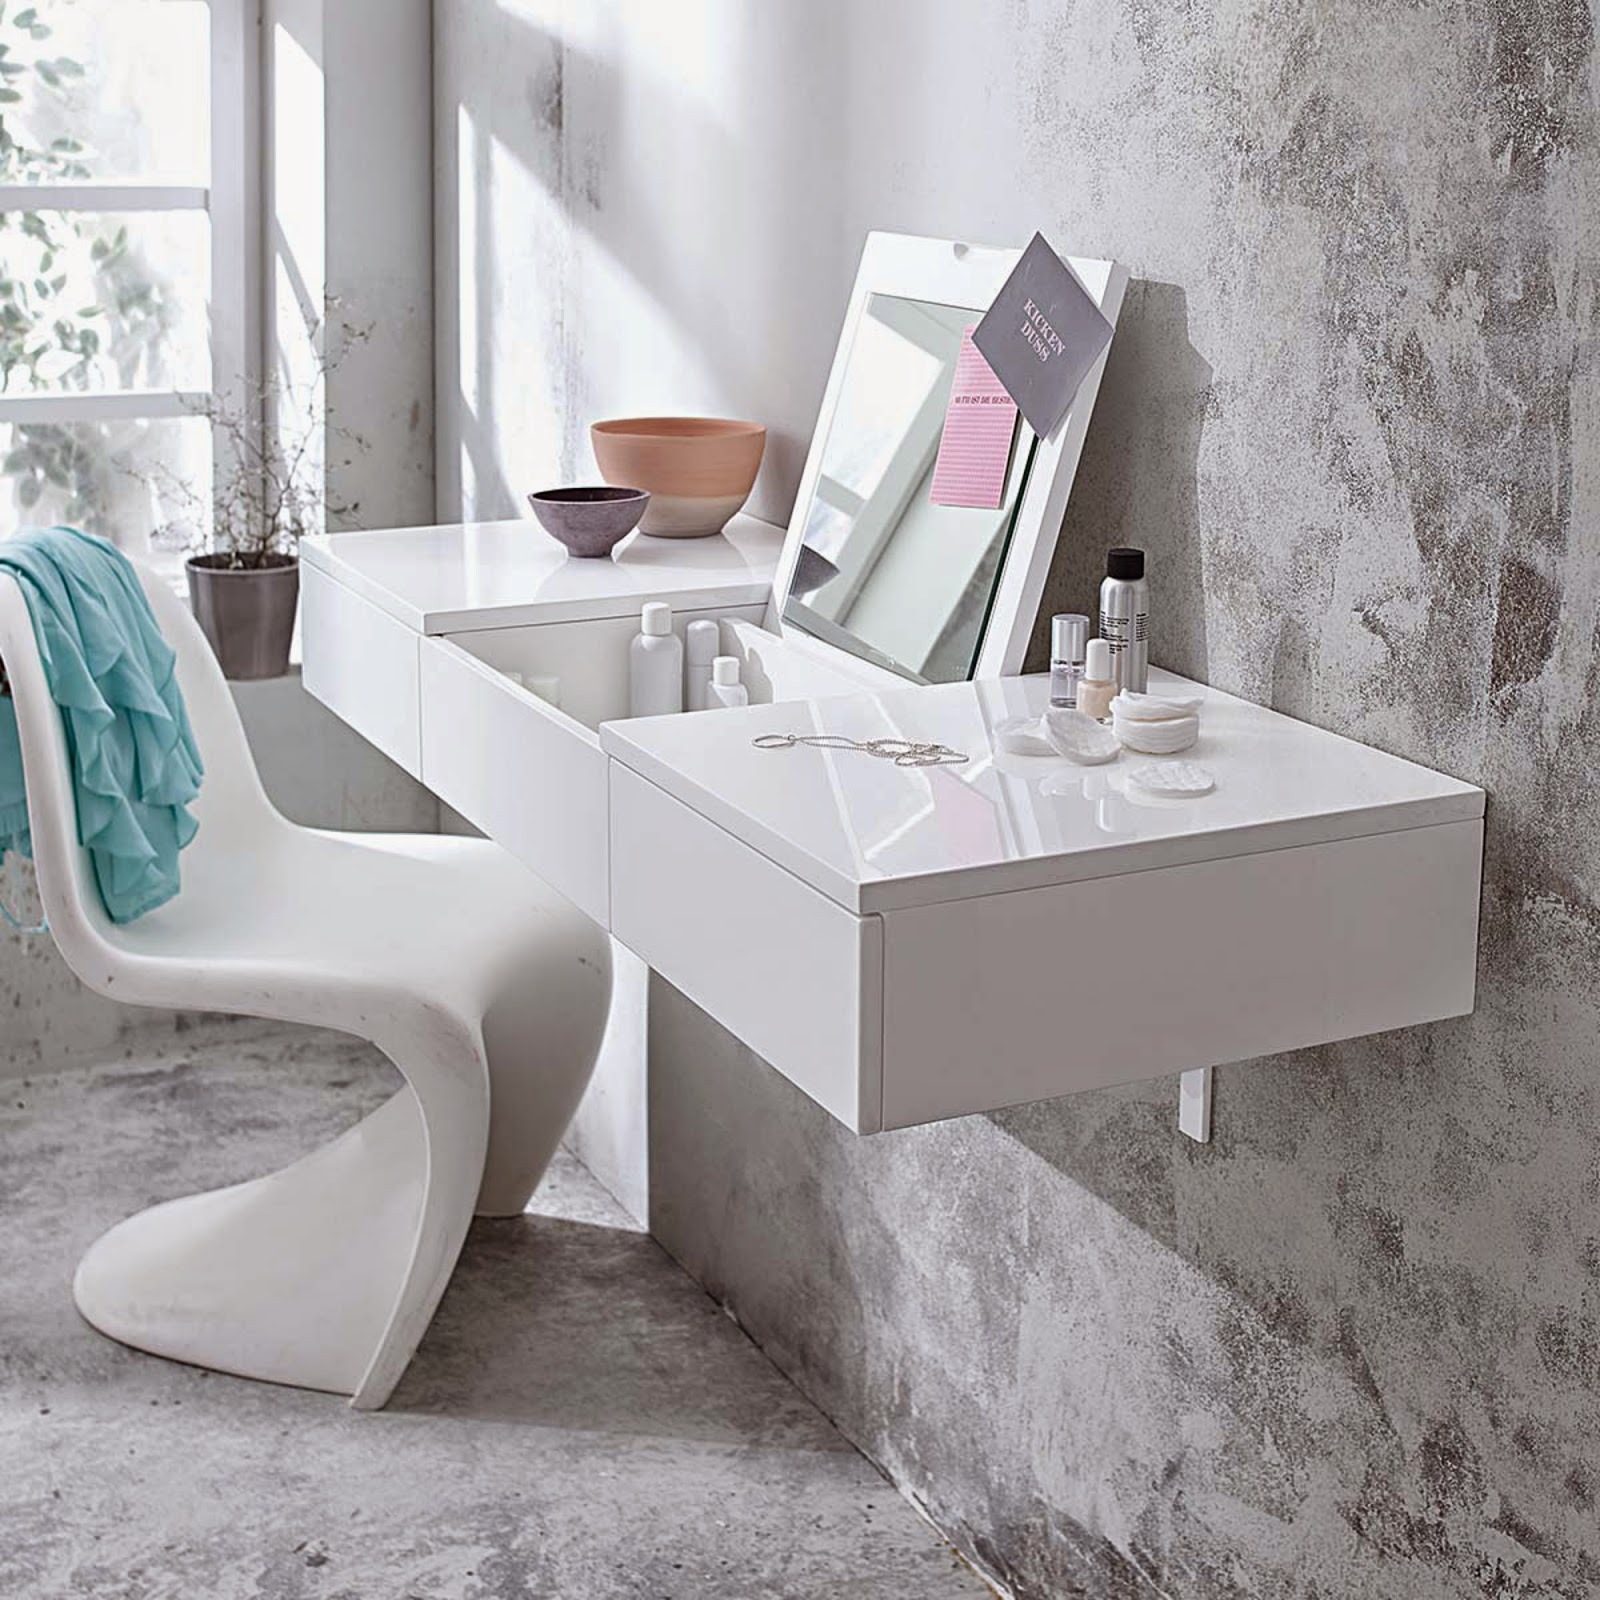 Best Dressing Table Full Catalog Of Dressing Table Designs Ideas And Styles